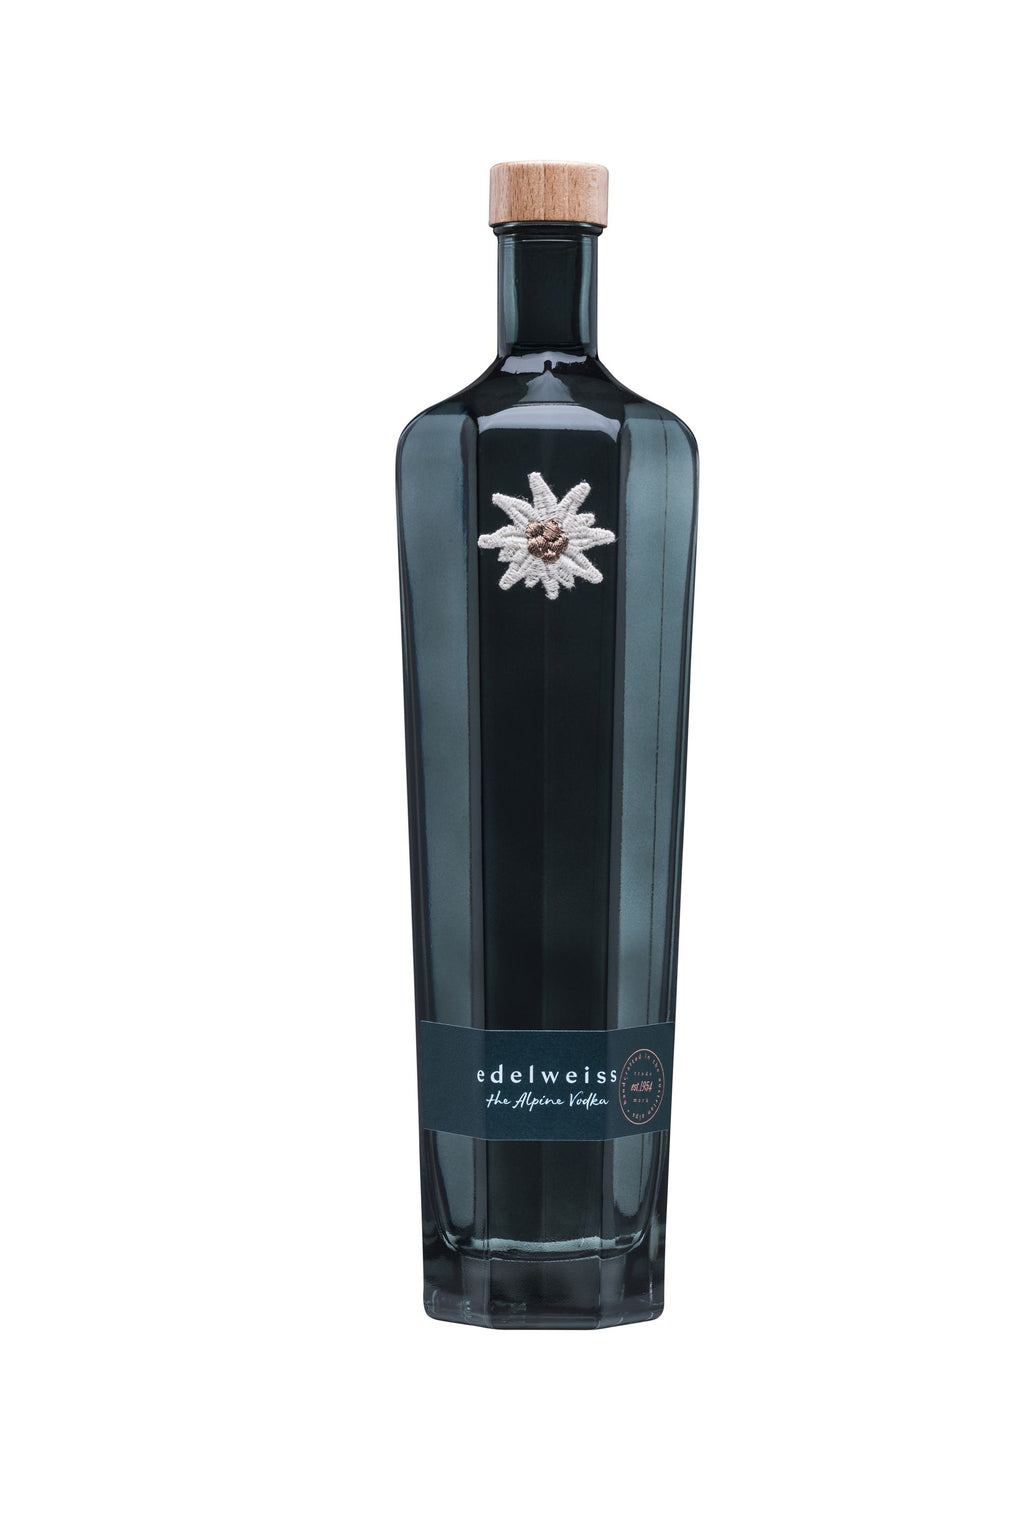 Edelweiss – the Alpine Vodka / 0,7l / 40%vol